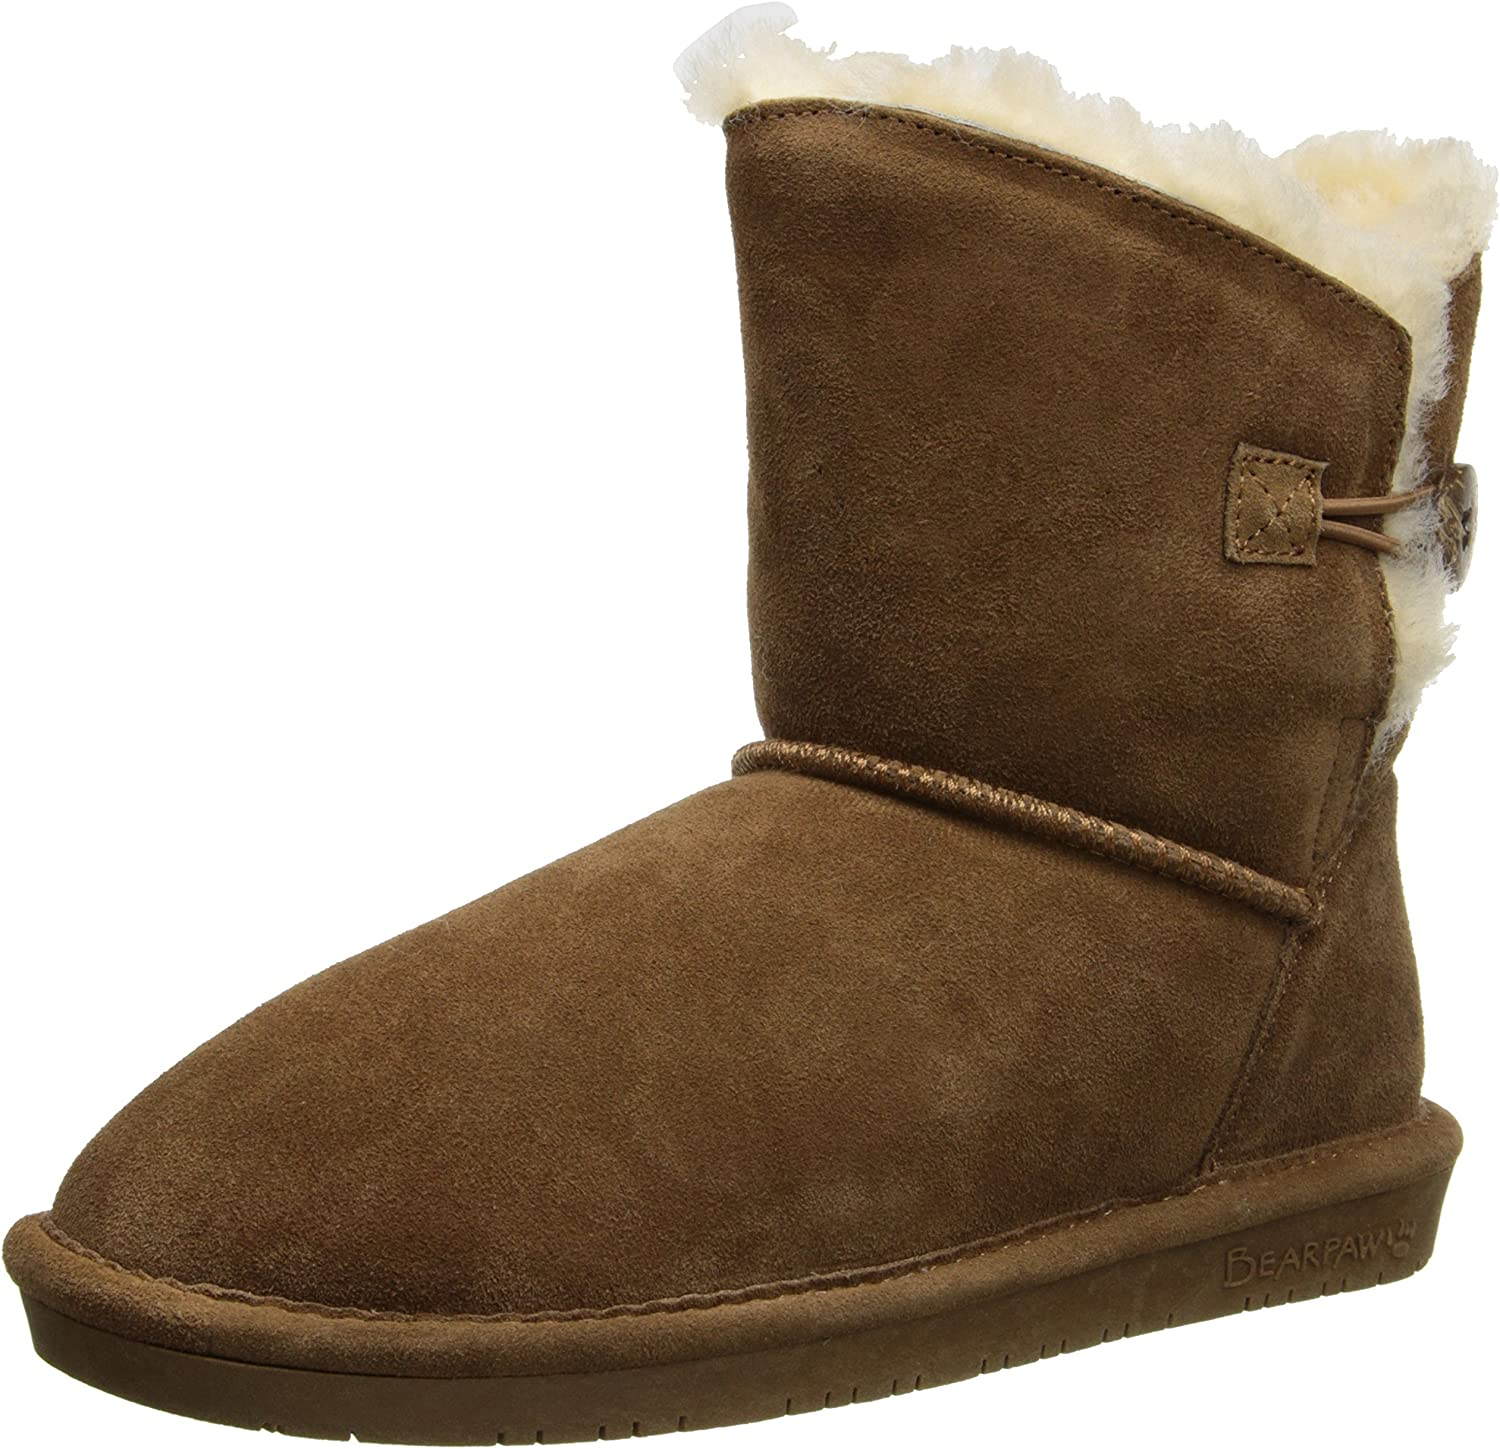 BEARPAW Women's Limited Special Price Rosie Shearling Hickory 1653-W Virginia Beach Mall Boots